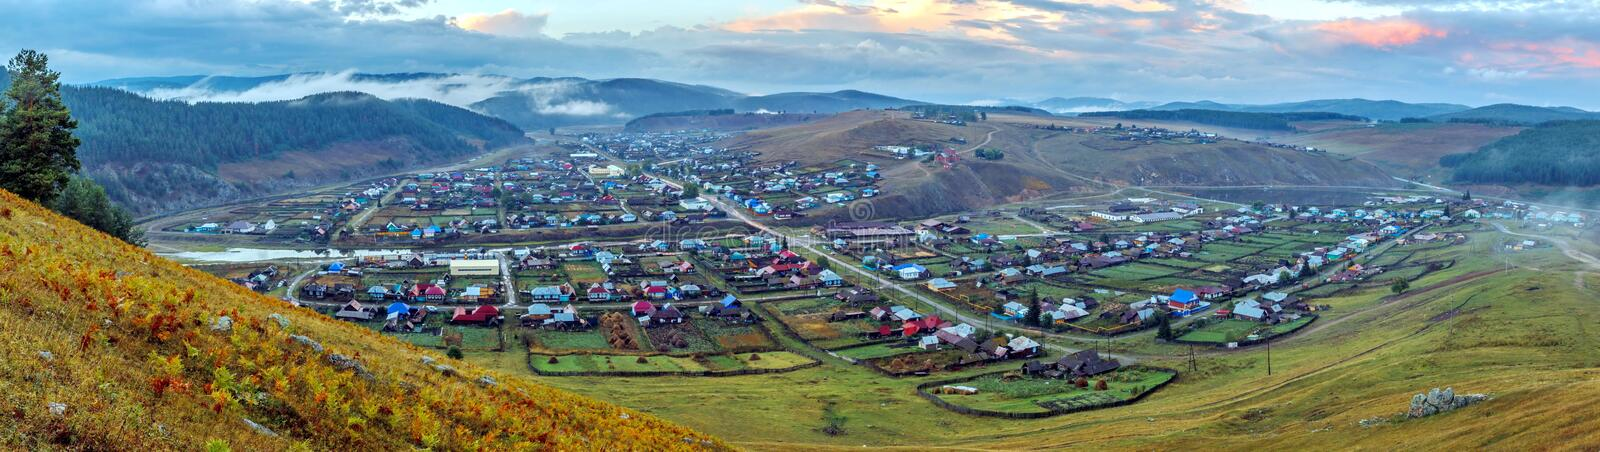 Ural village in the mountains. Kaga. Bashkortostan. Picturesque Ural valley. The village in the mountains. Kaga. Bashkortostan stock photo